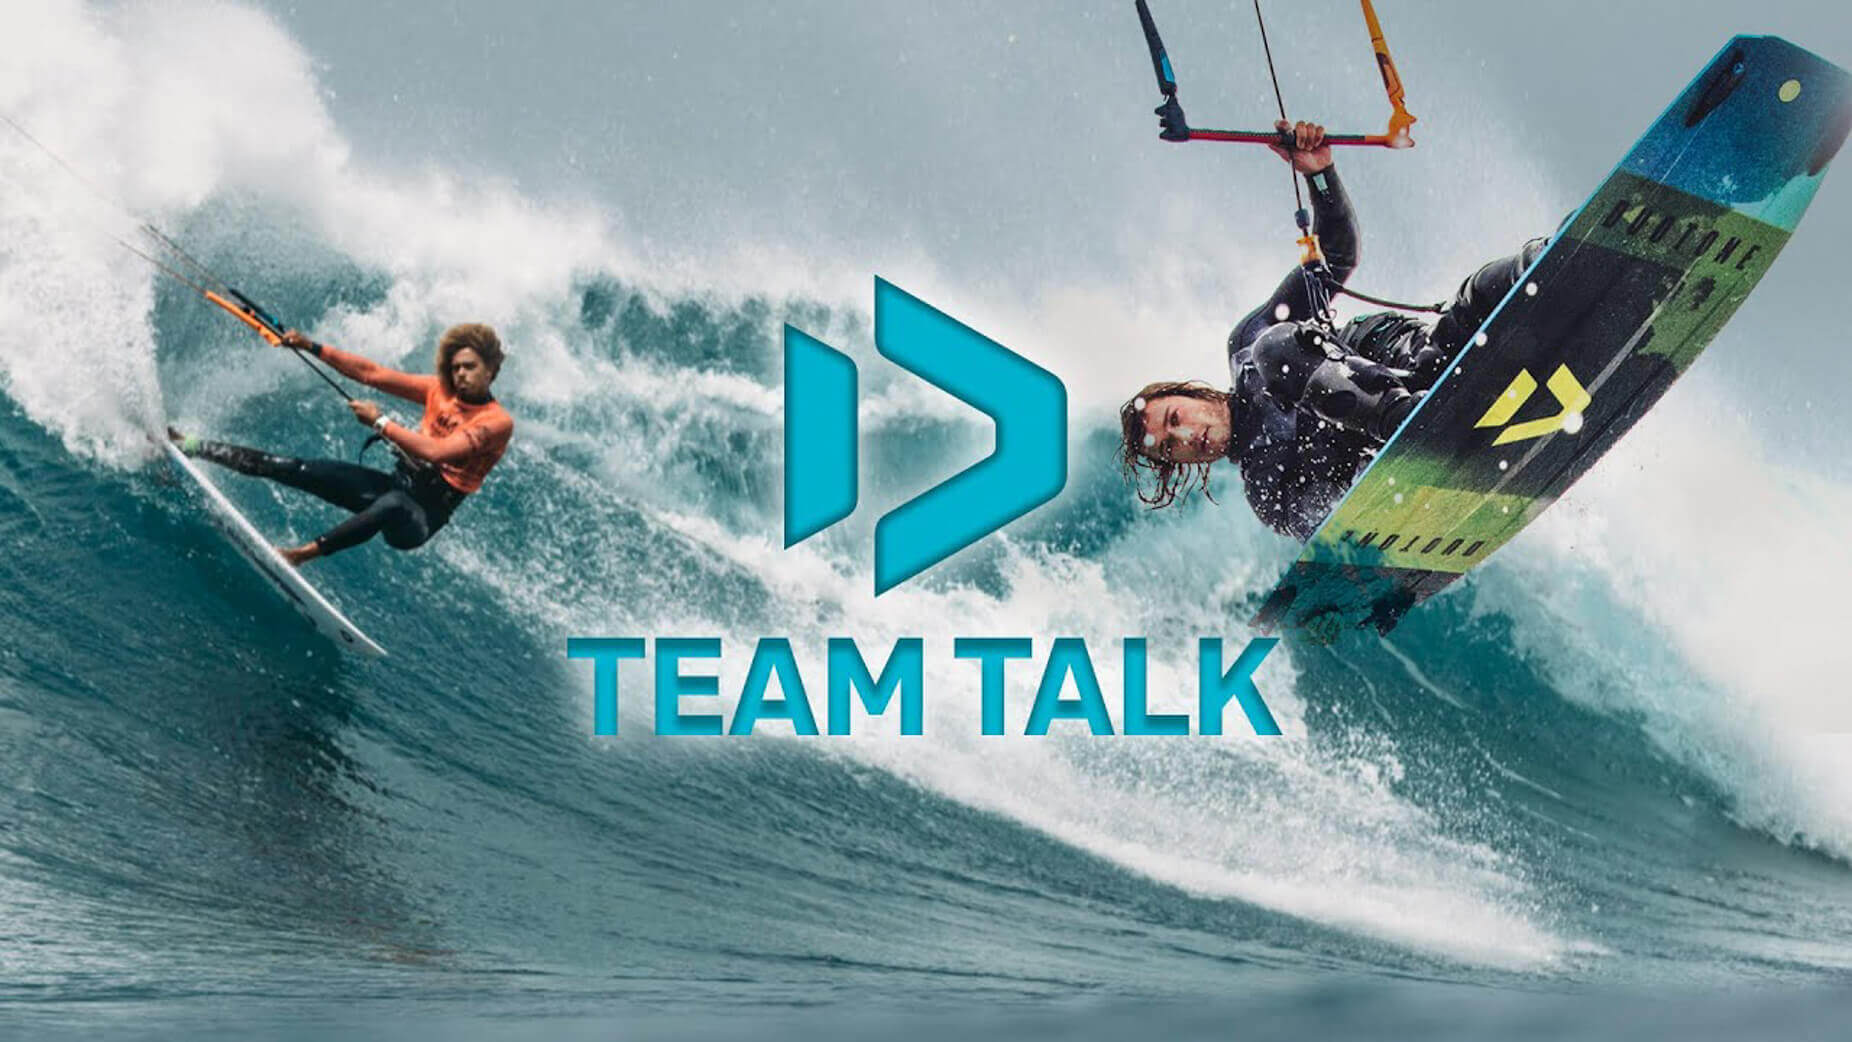 Your Spare Parts with Lewis Crathern - #TEAMTALK